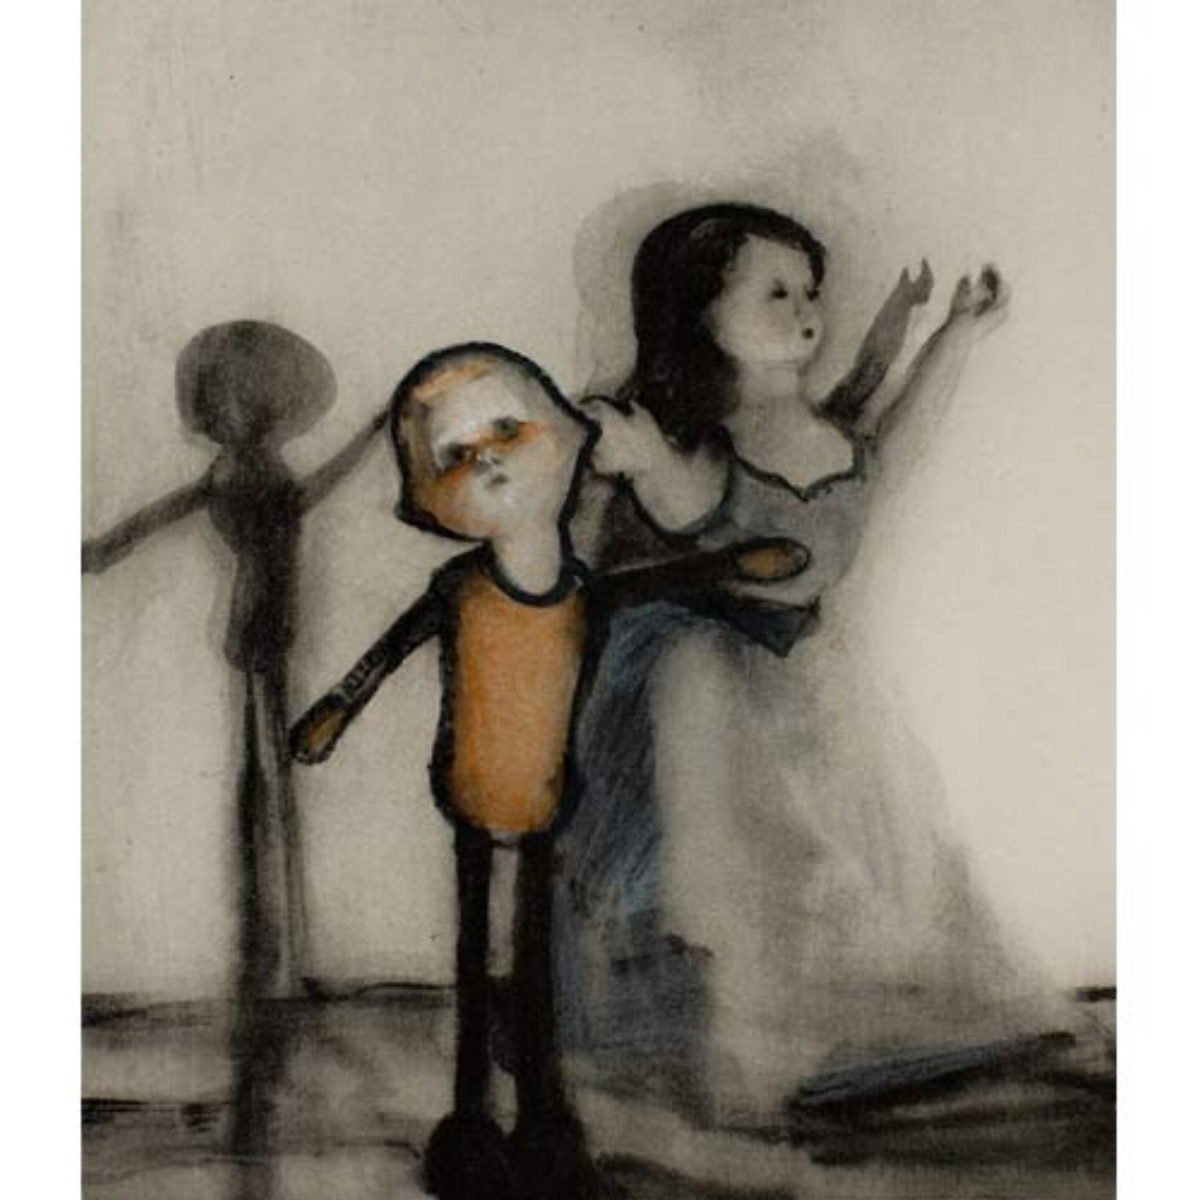 "Ellen Phelan, A DOLL, HER STORY (APPLAUSE), 1995, portfolio of eight photogravures with hand coloring, 13"" x 16"" ed: 28"